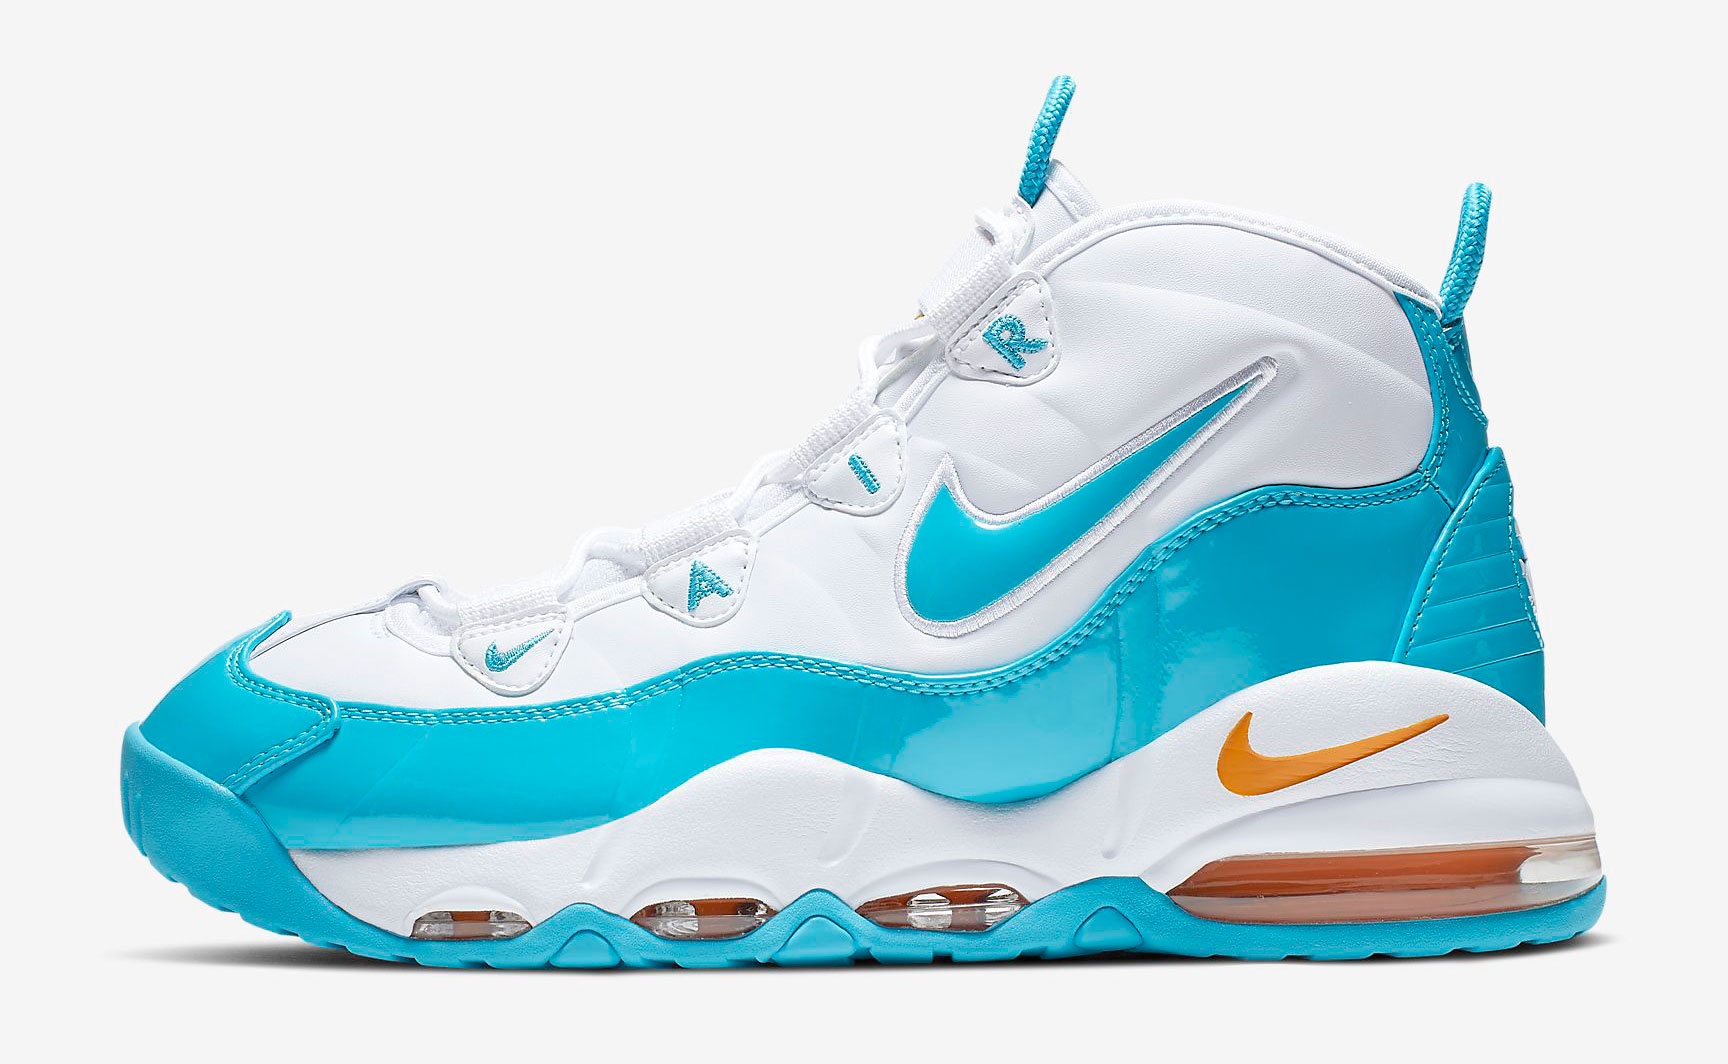 nike-air-max-uptempo-96-blue-fury-gold-release-date-where-to-buy